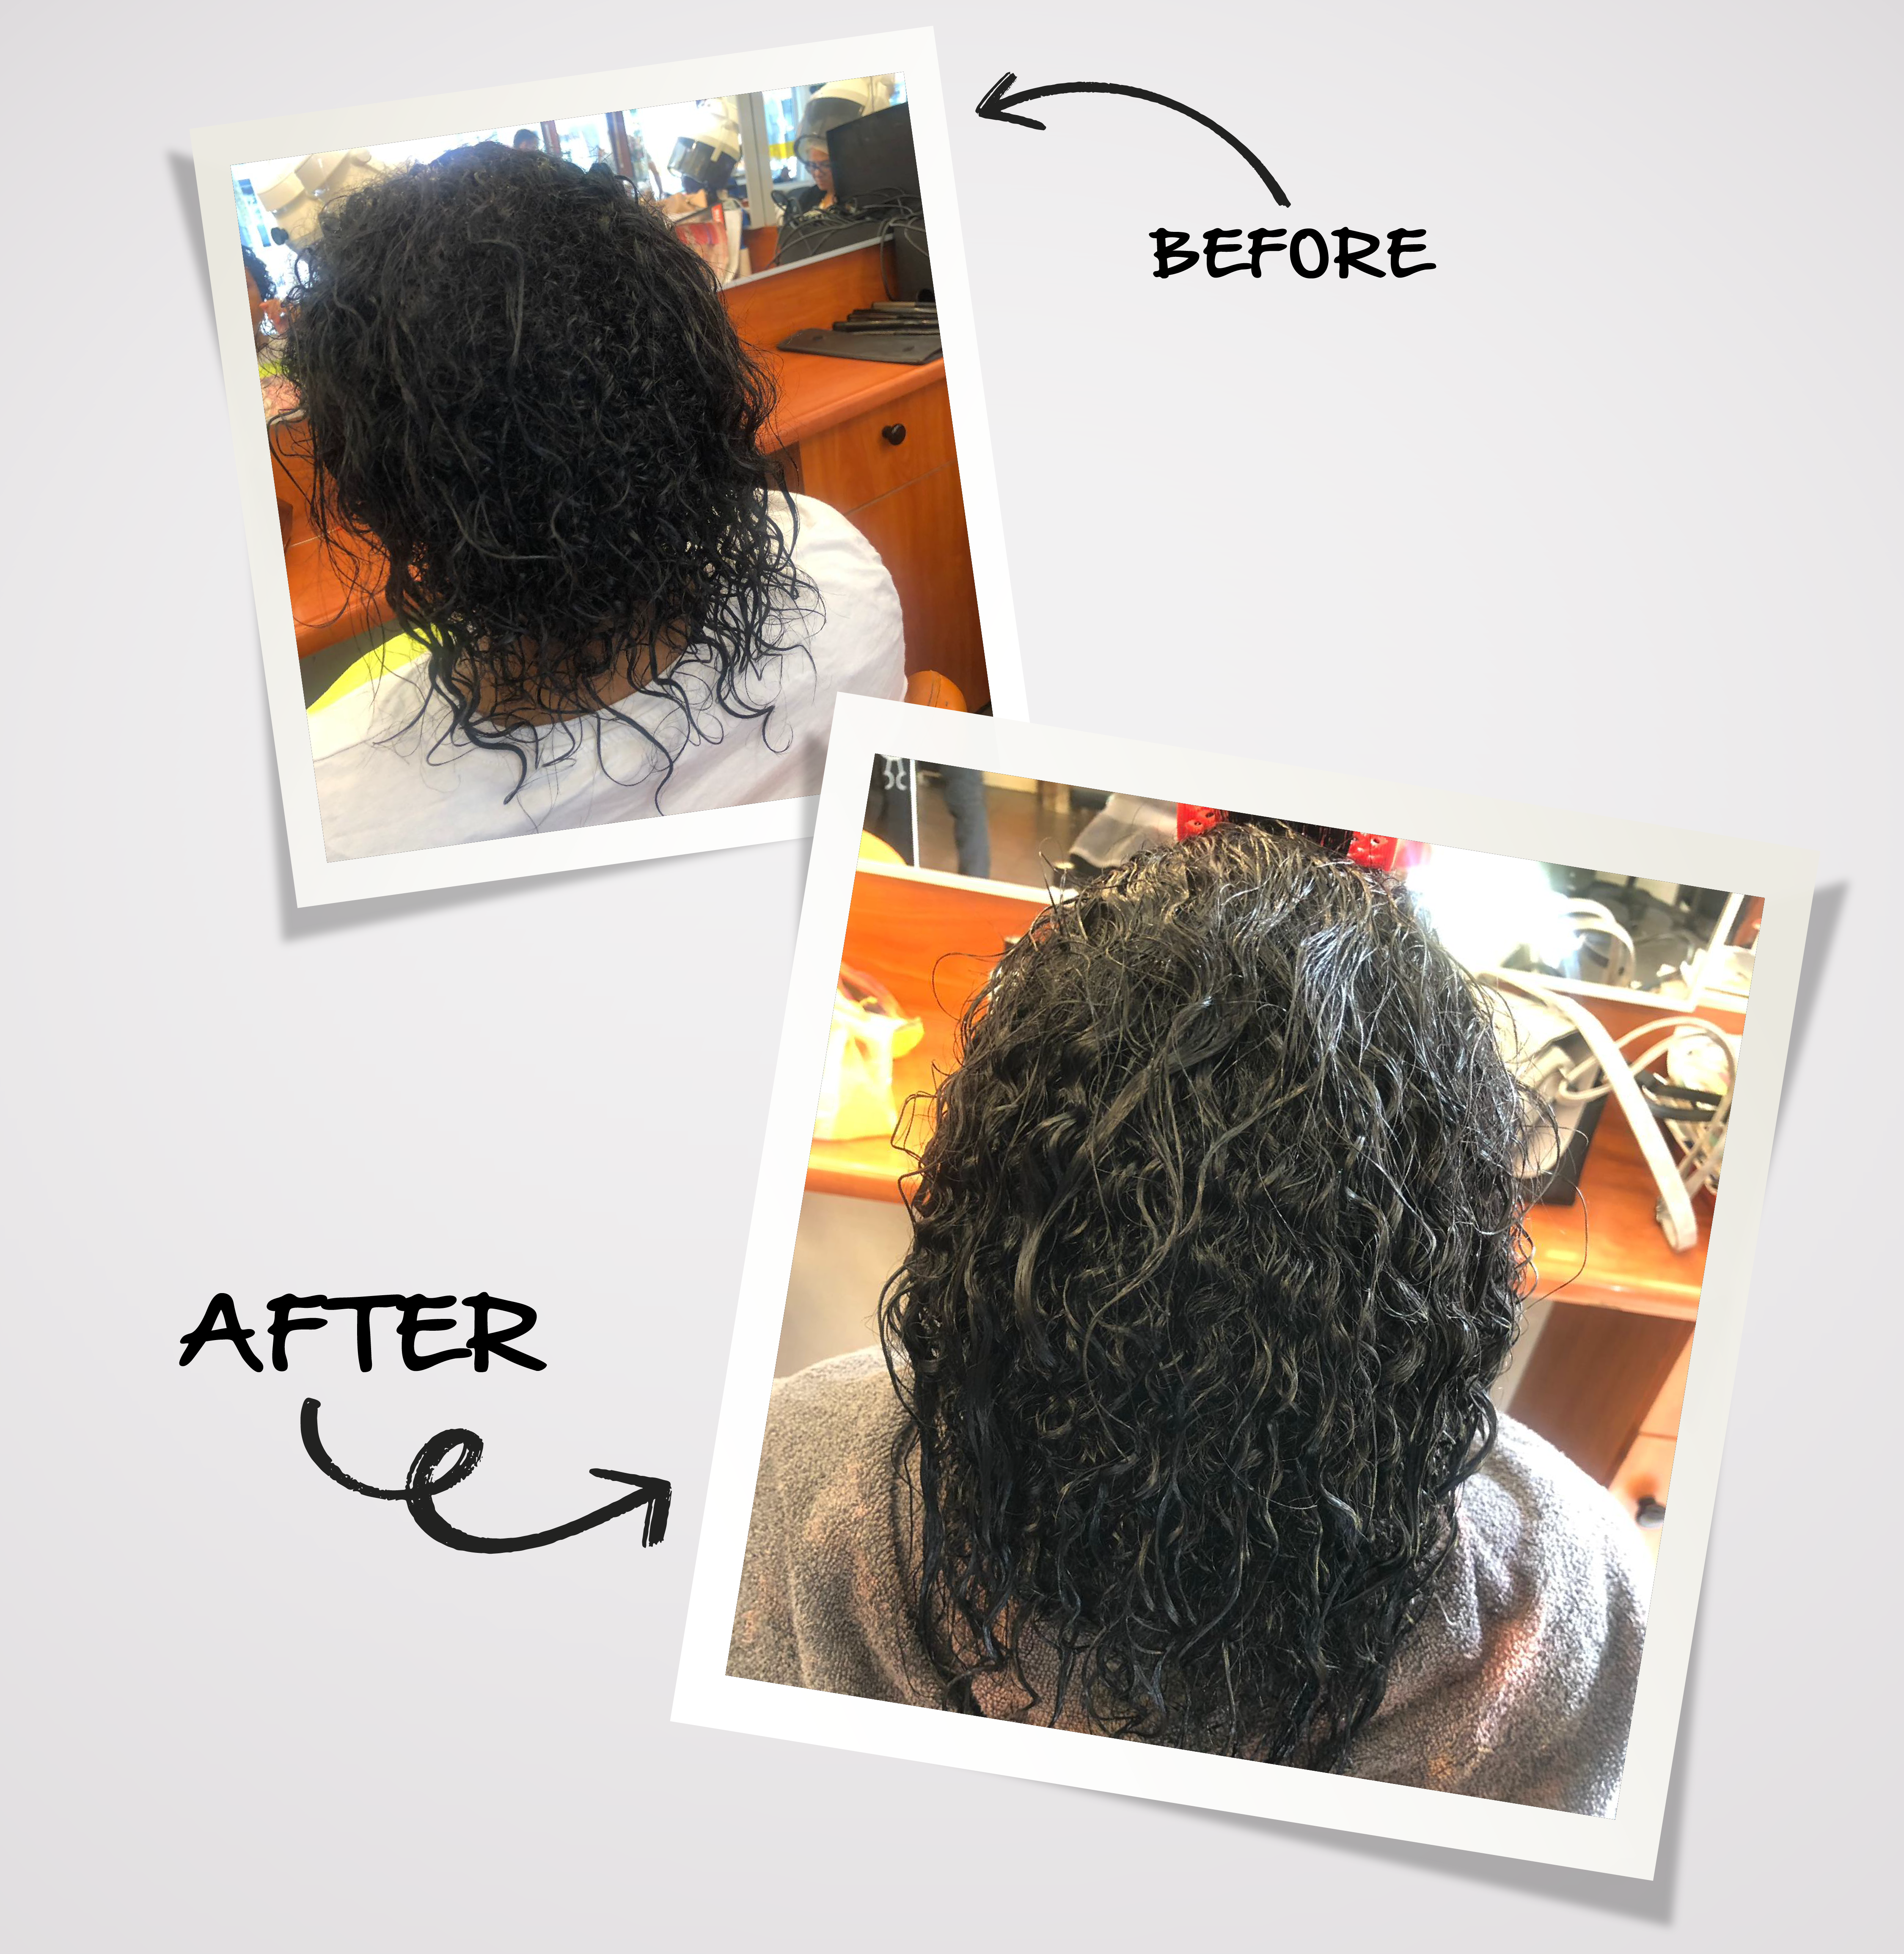 Volle haren before and after